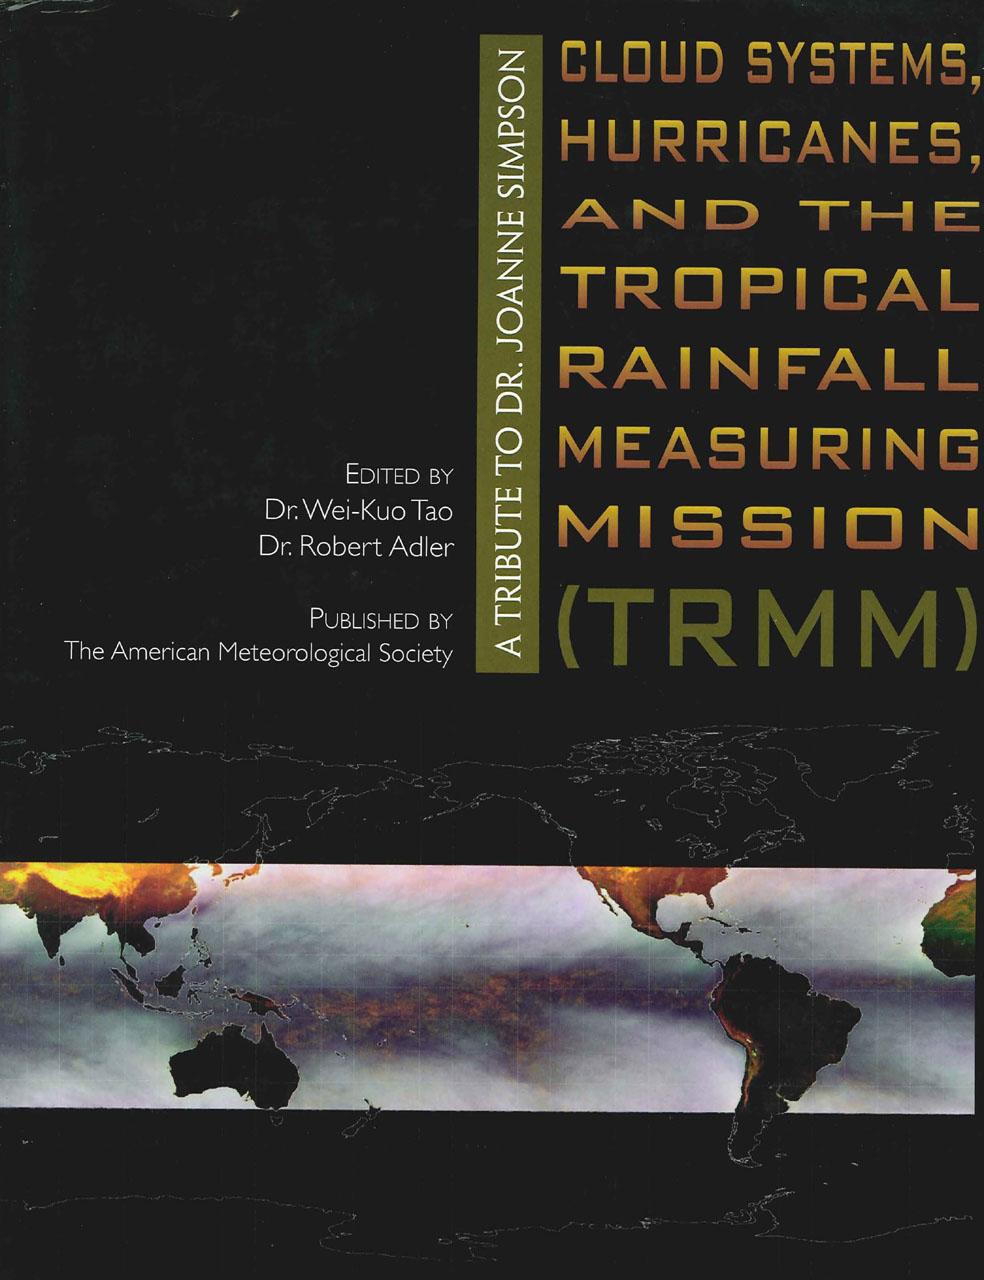 Cloud Systems, Hurricanes, and the Tropical Rainfall Measuring Mission